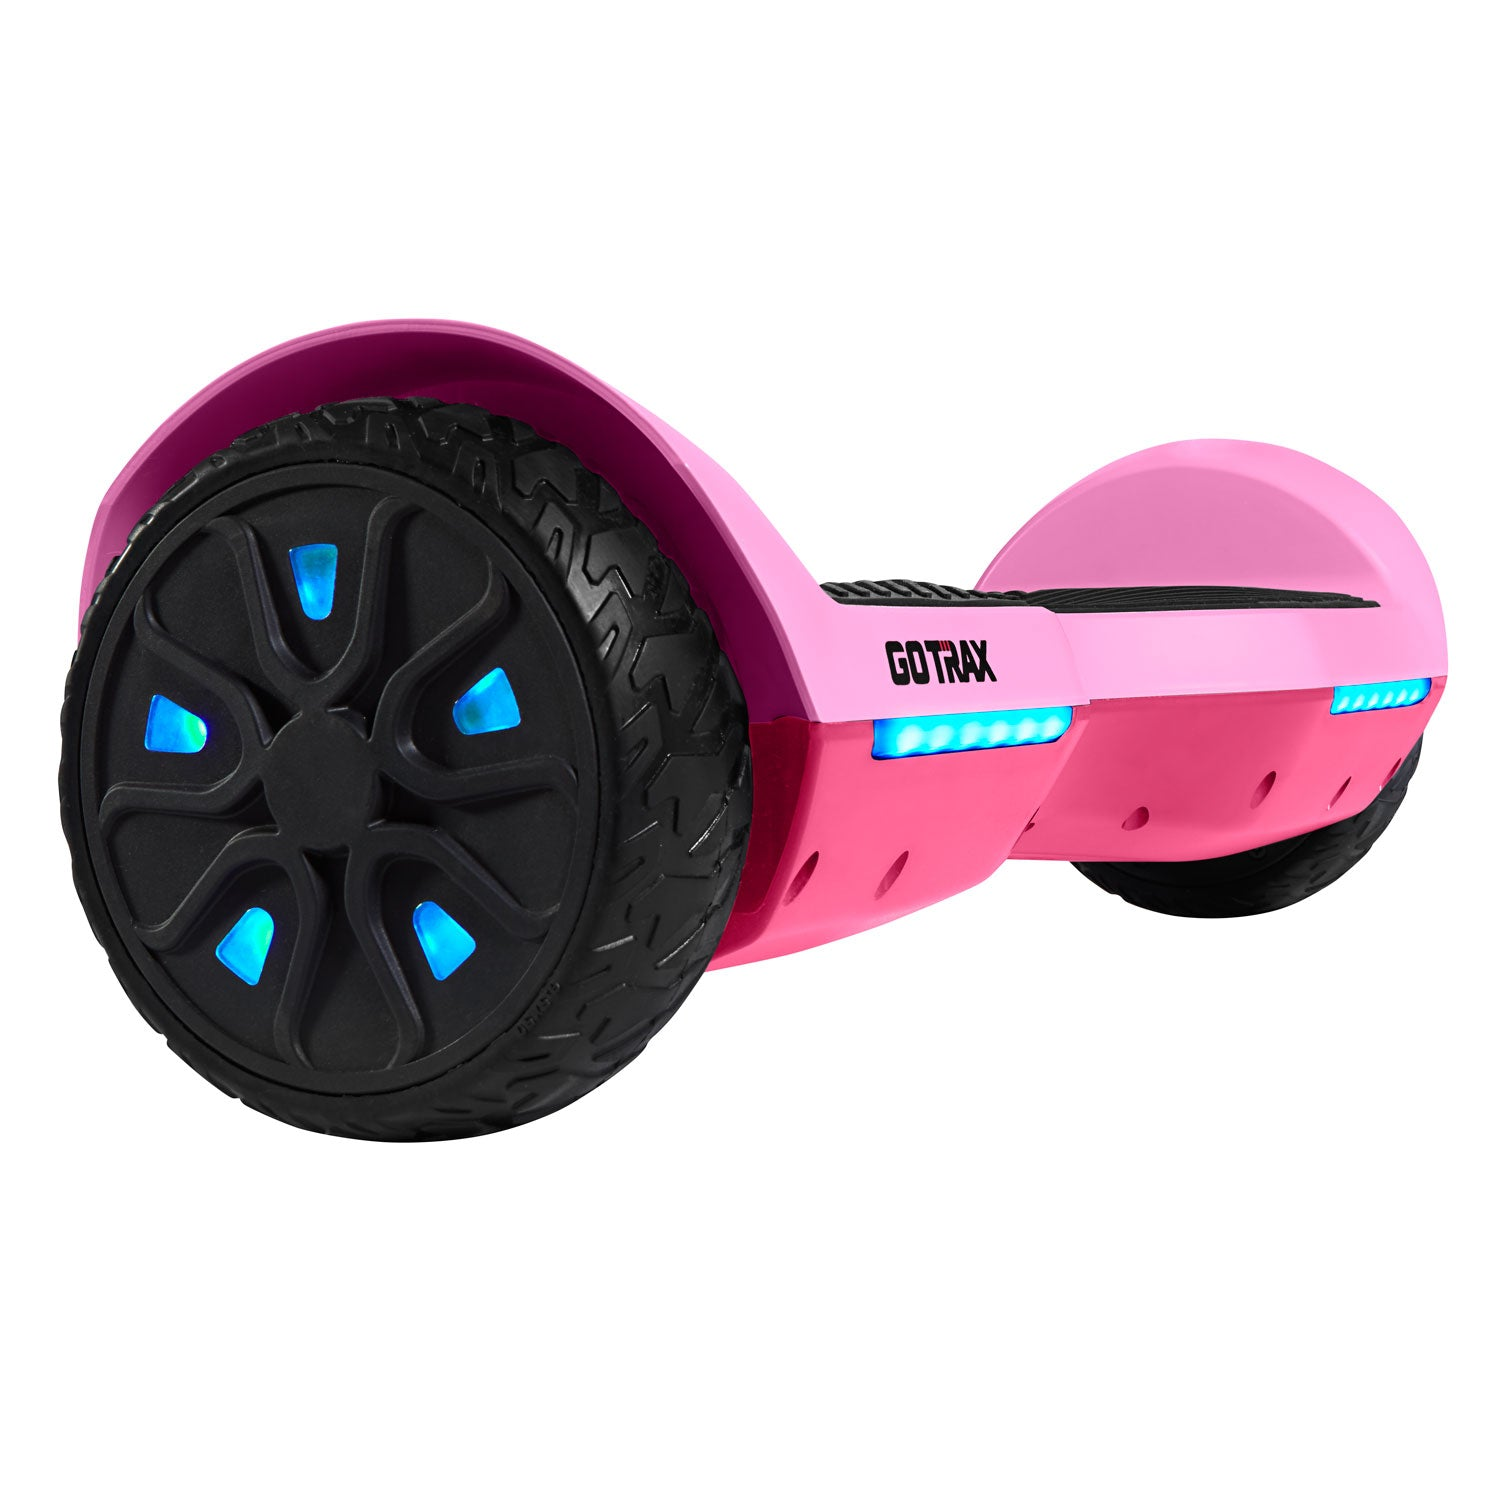 pink srx a6 bluetooth hoverboard Main image